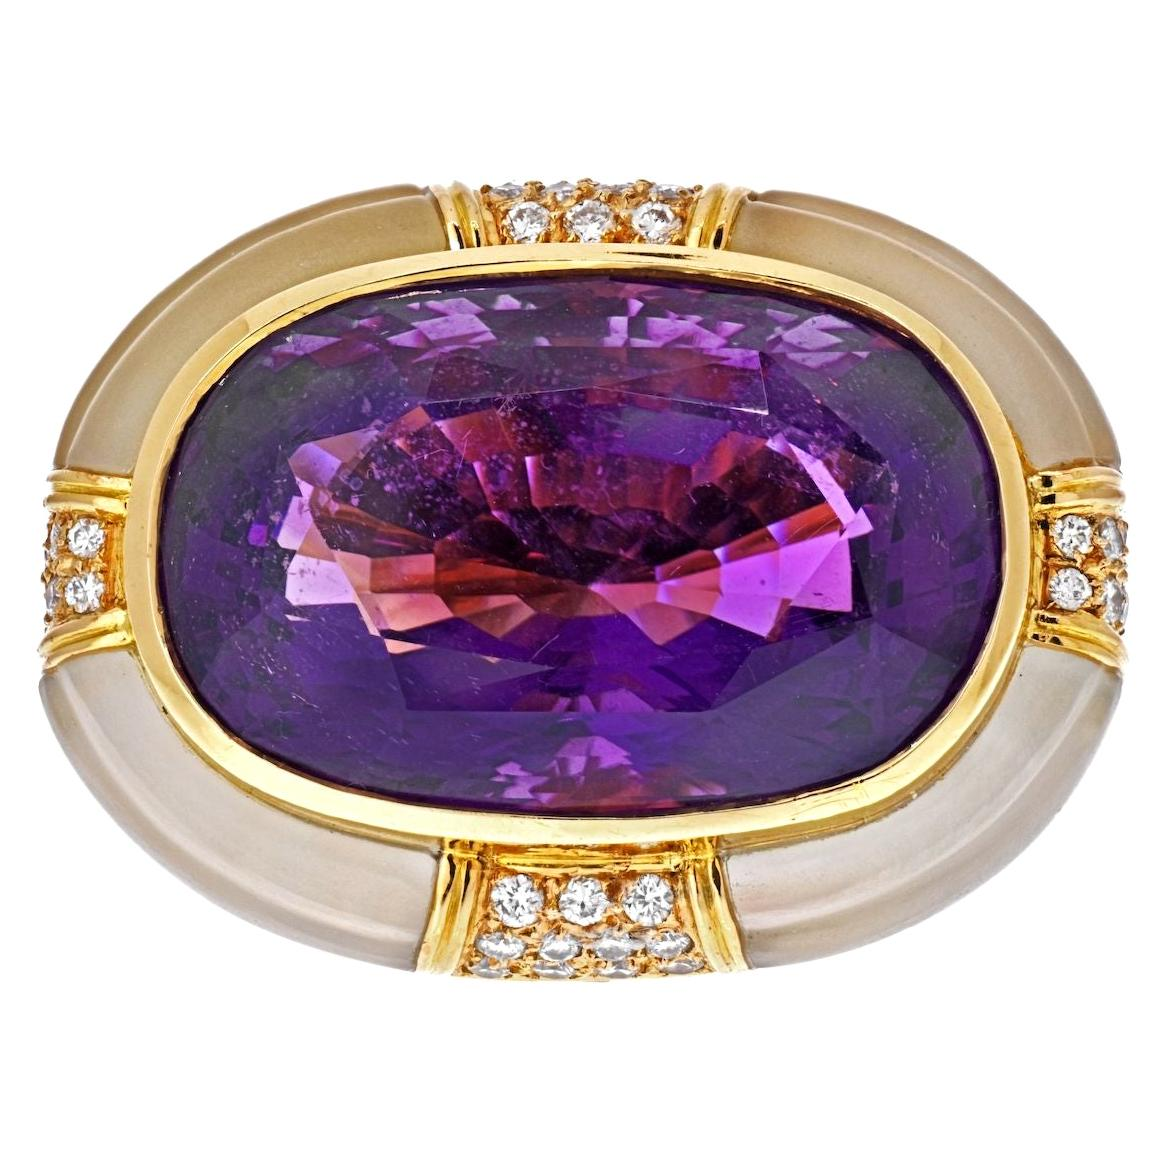 18K Yellow Gold Large Oval Amethyst and Rock Crystal Estate Diamond Ring